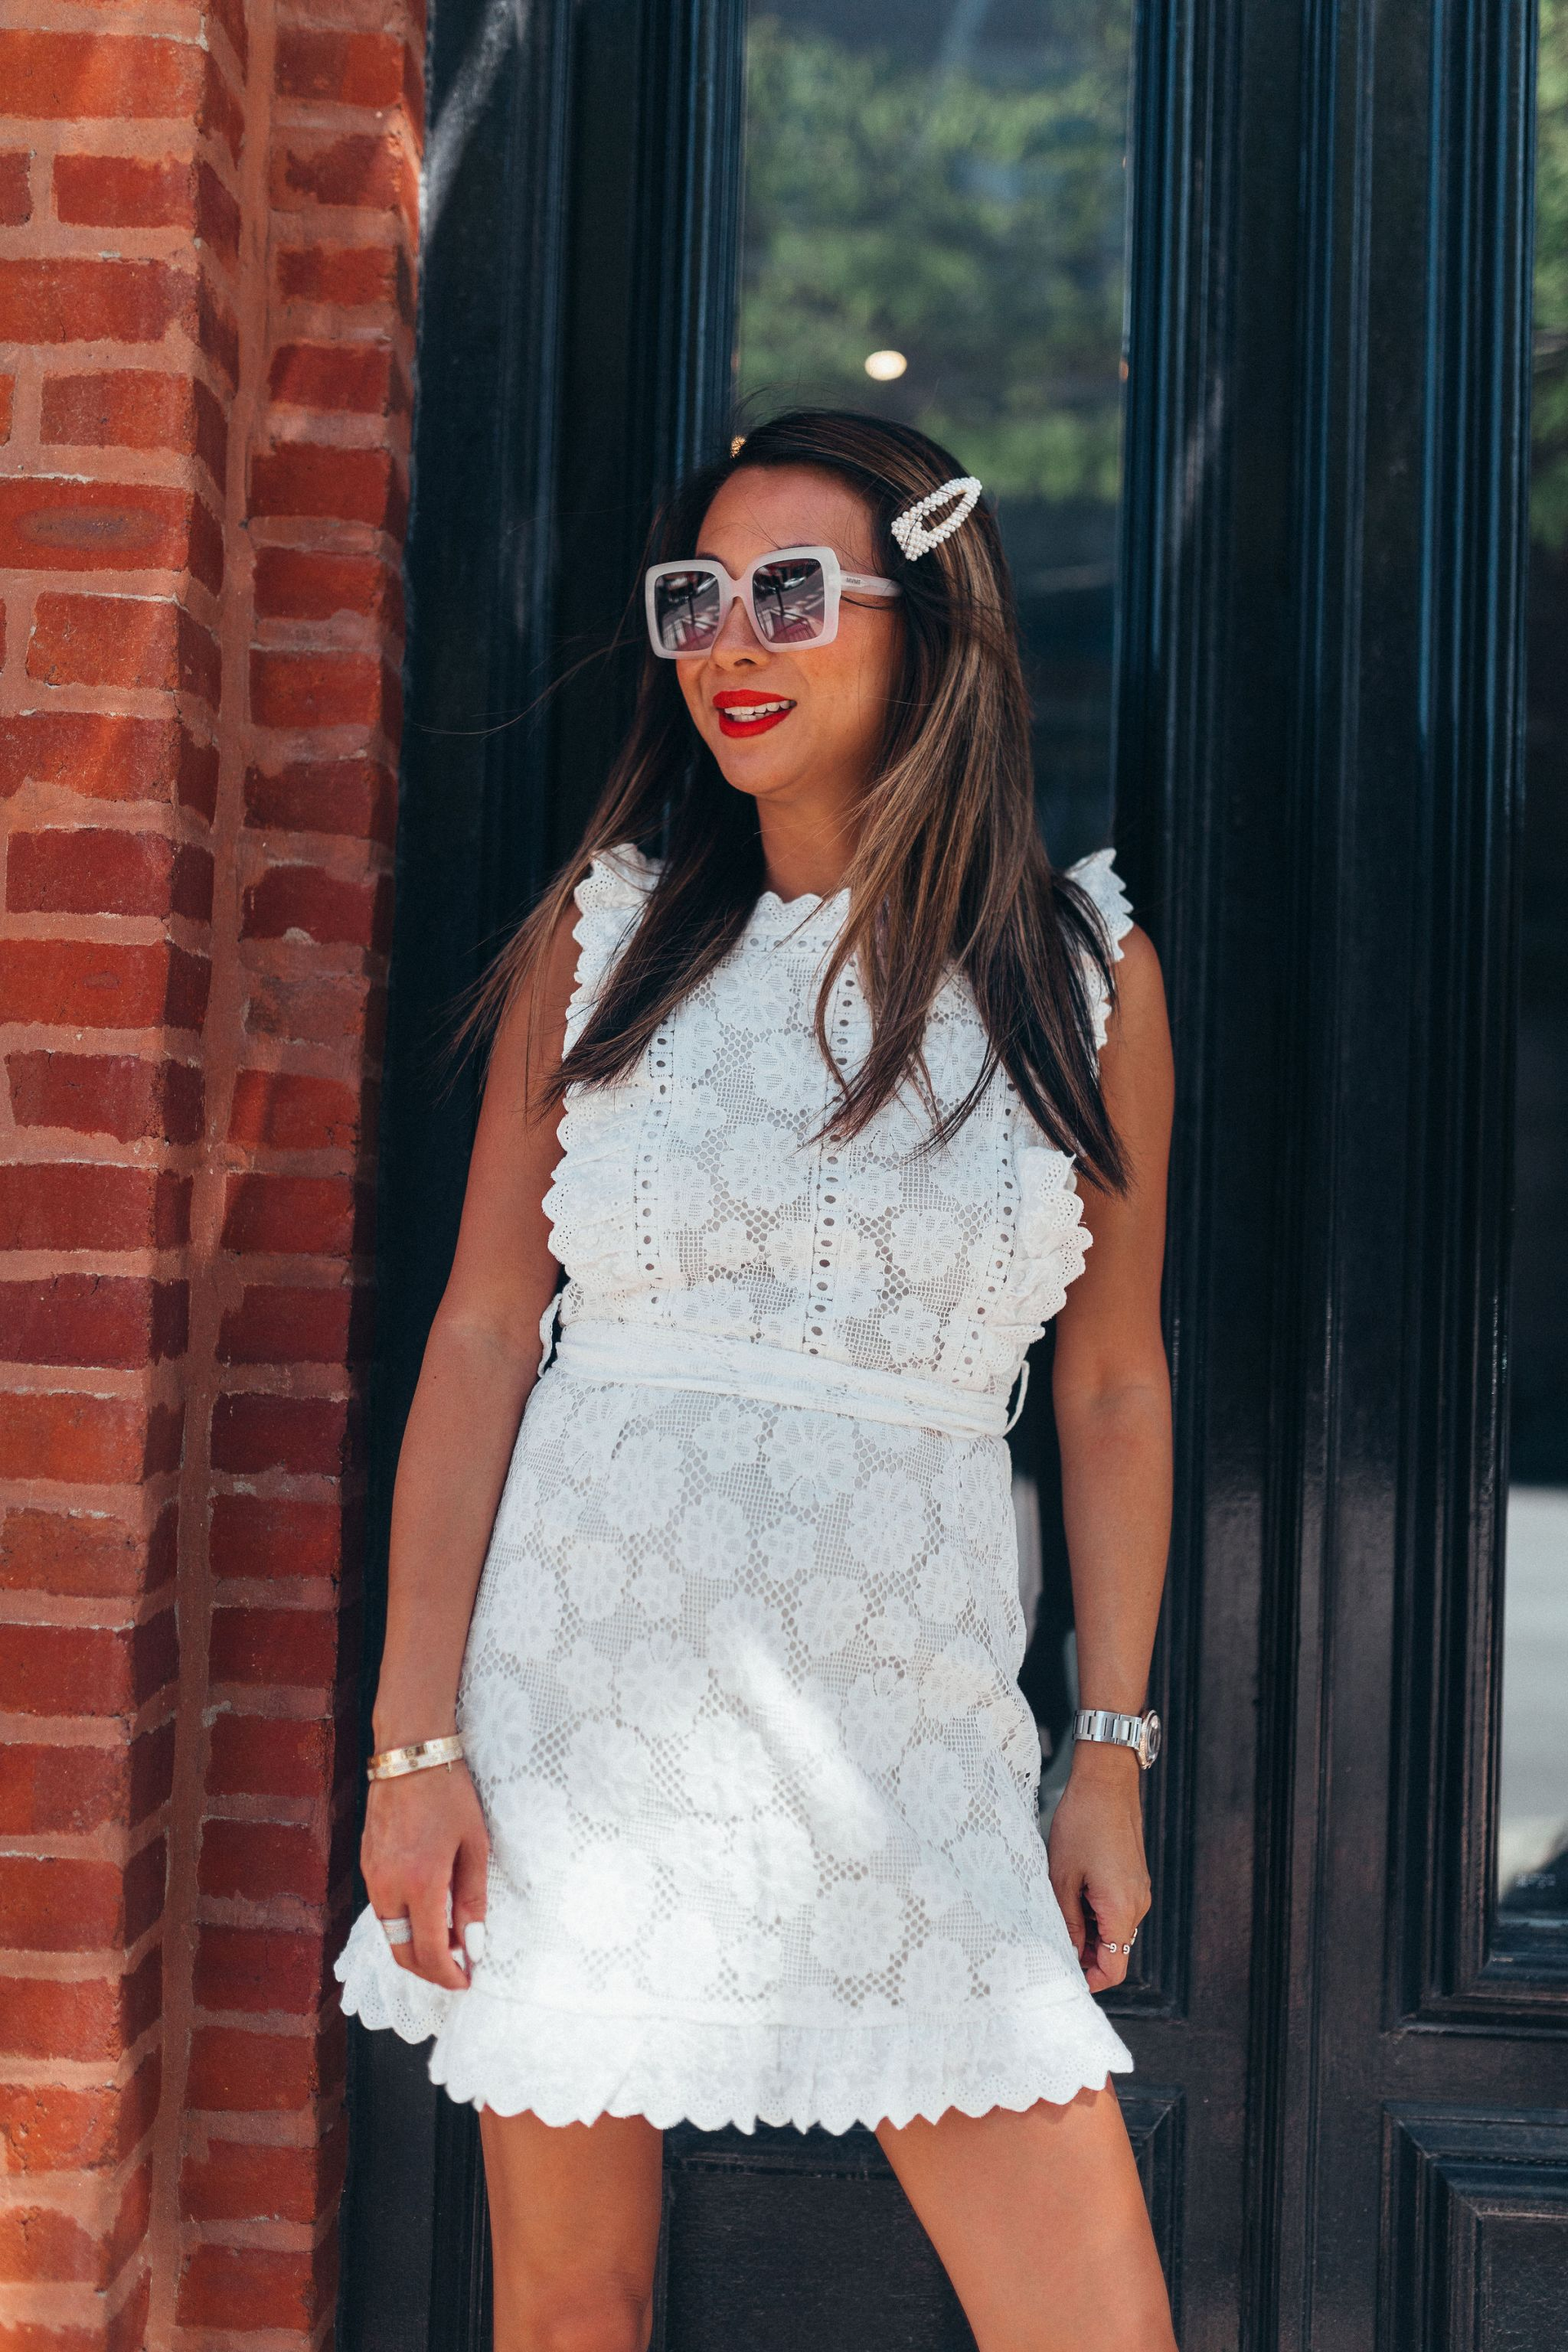 amazon fashion, white eyelet dress, white dress for summer, best amazon white dress, what to wear in the summer, chicago summer style, Jennifer Worman, Best Chicago Fashion Blog, Best Chicago Mom Blogger, Be, White Dresses for Summer